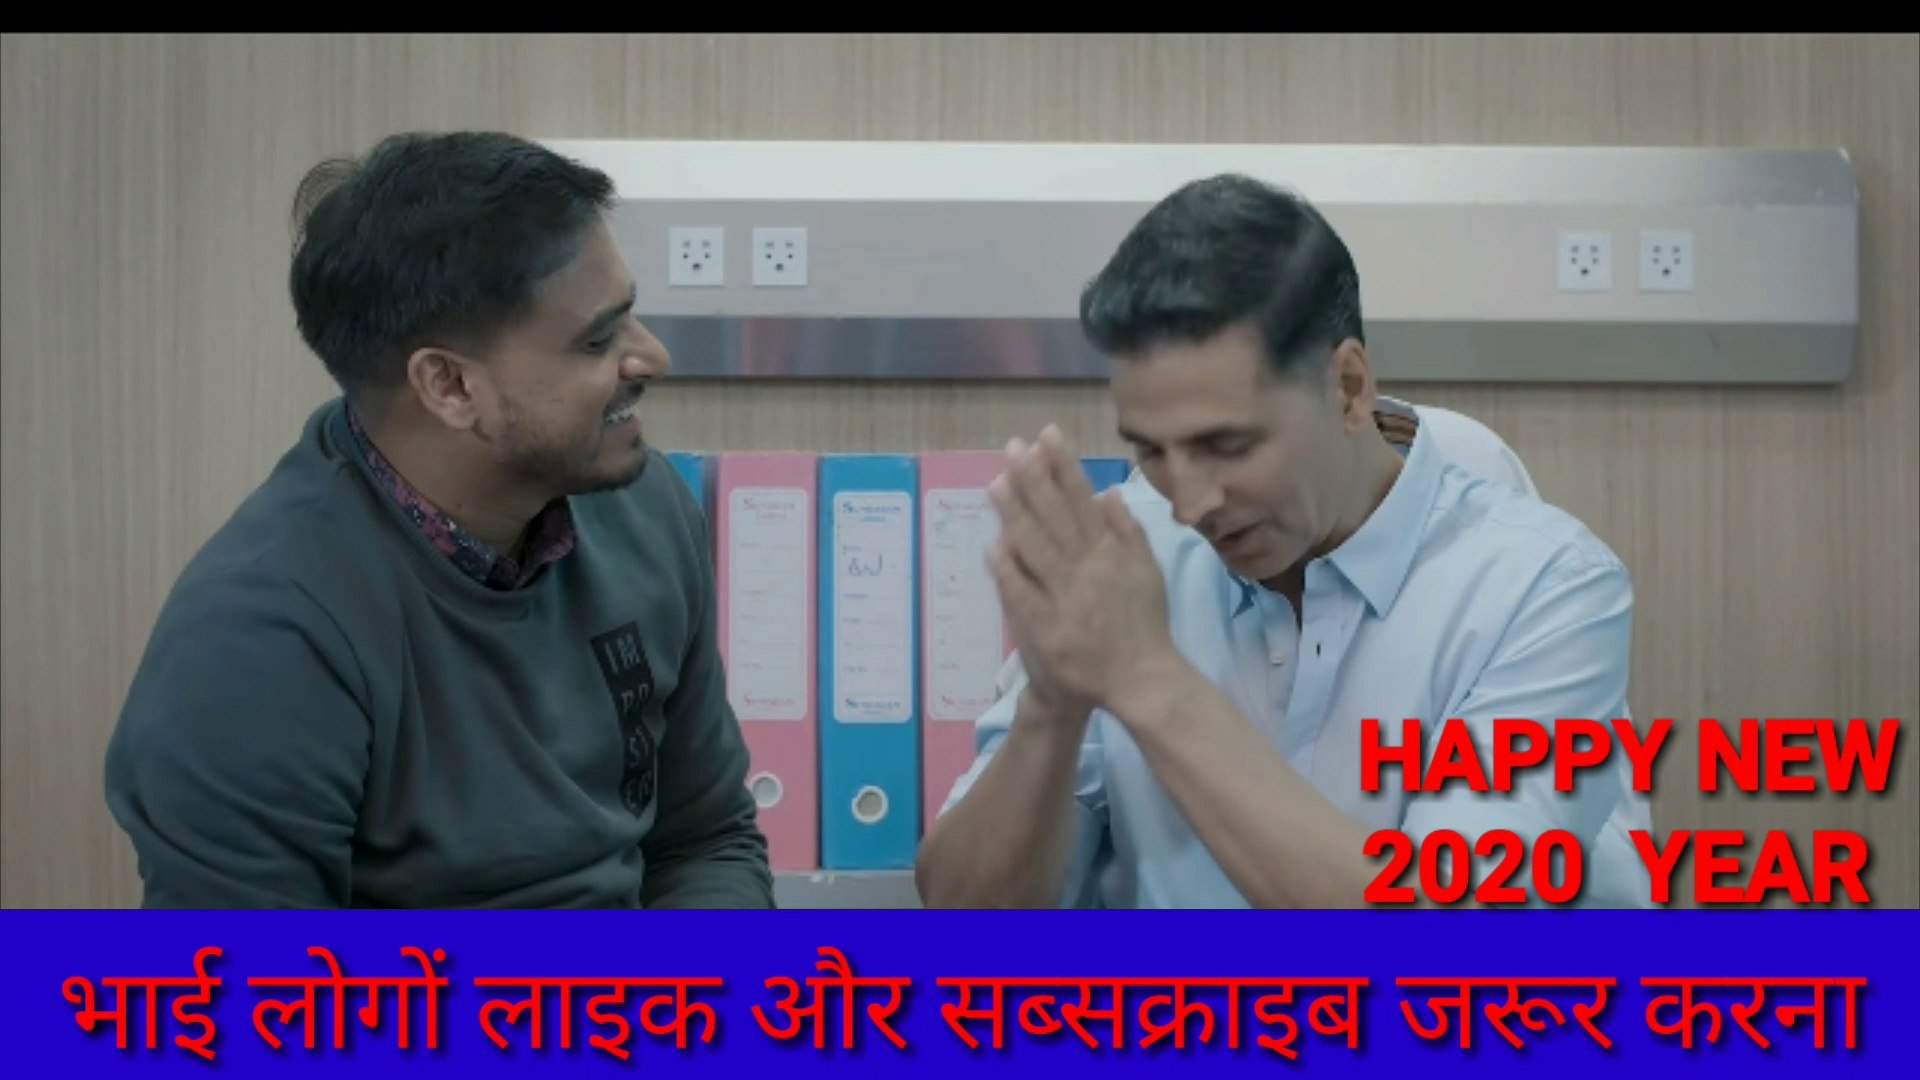 Takraar - Amit bhadana,  Amit bhadana new video Takraar, Amit bhadana new video 2020 aa gyi he,  Ami